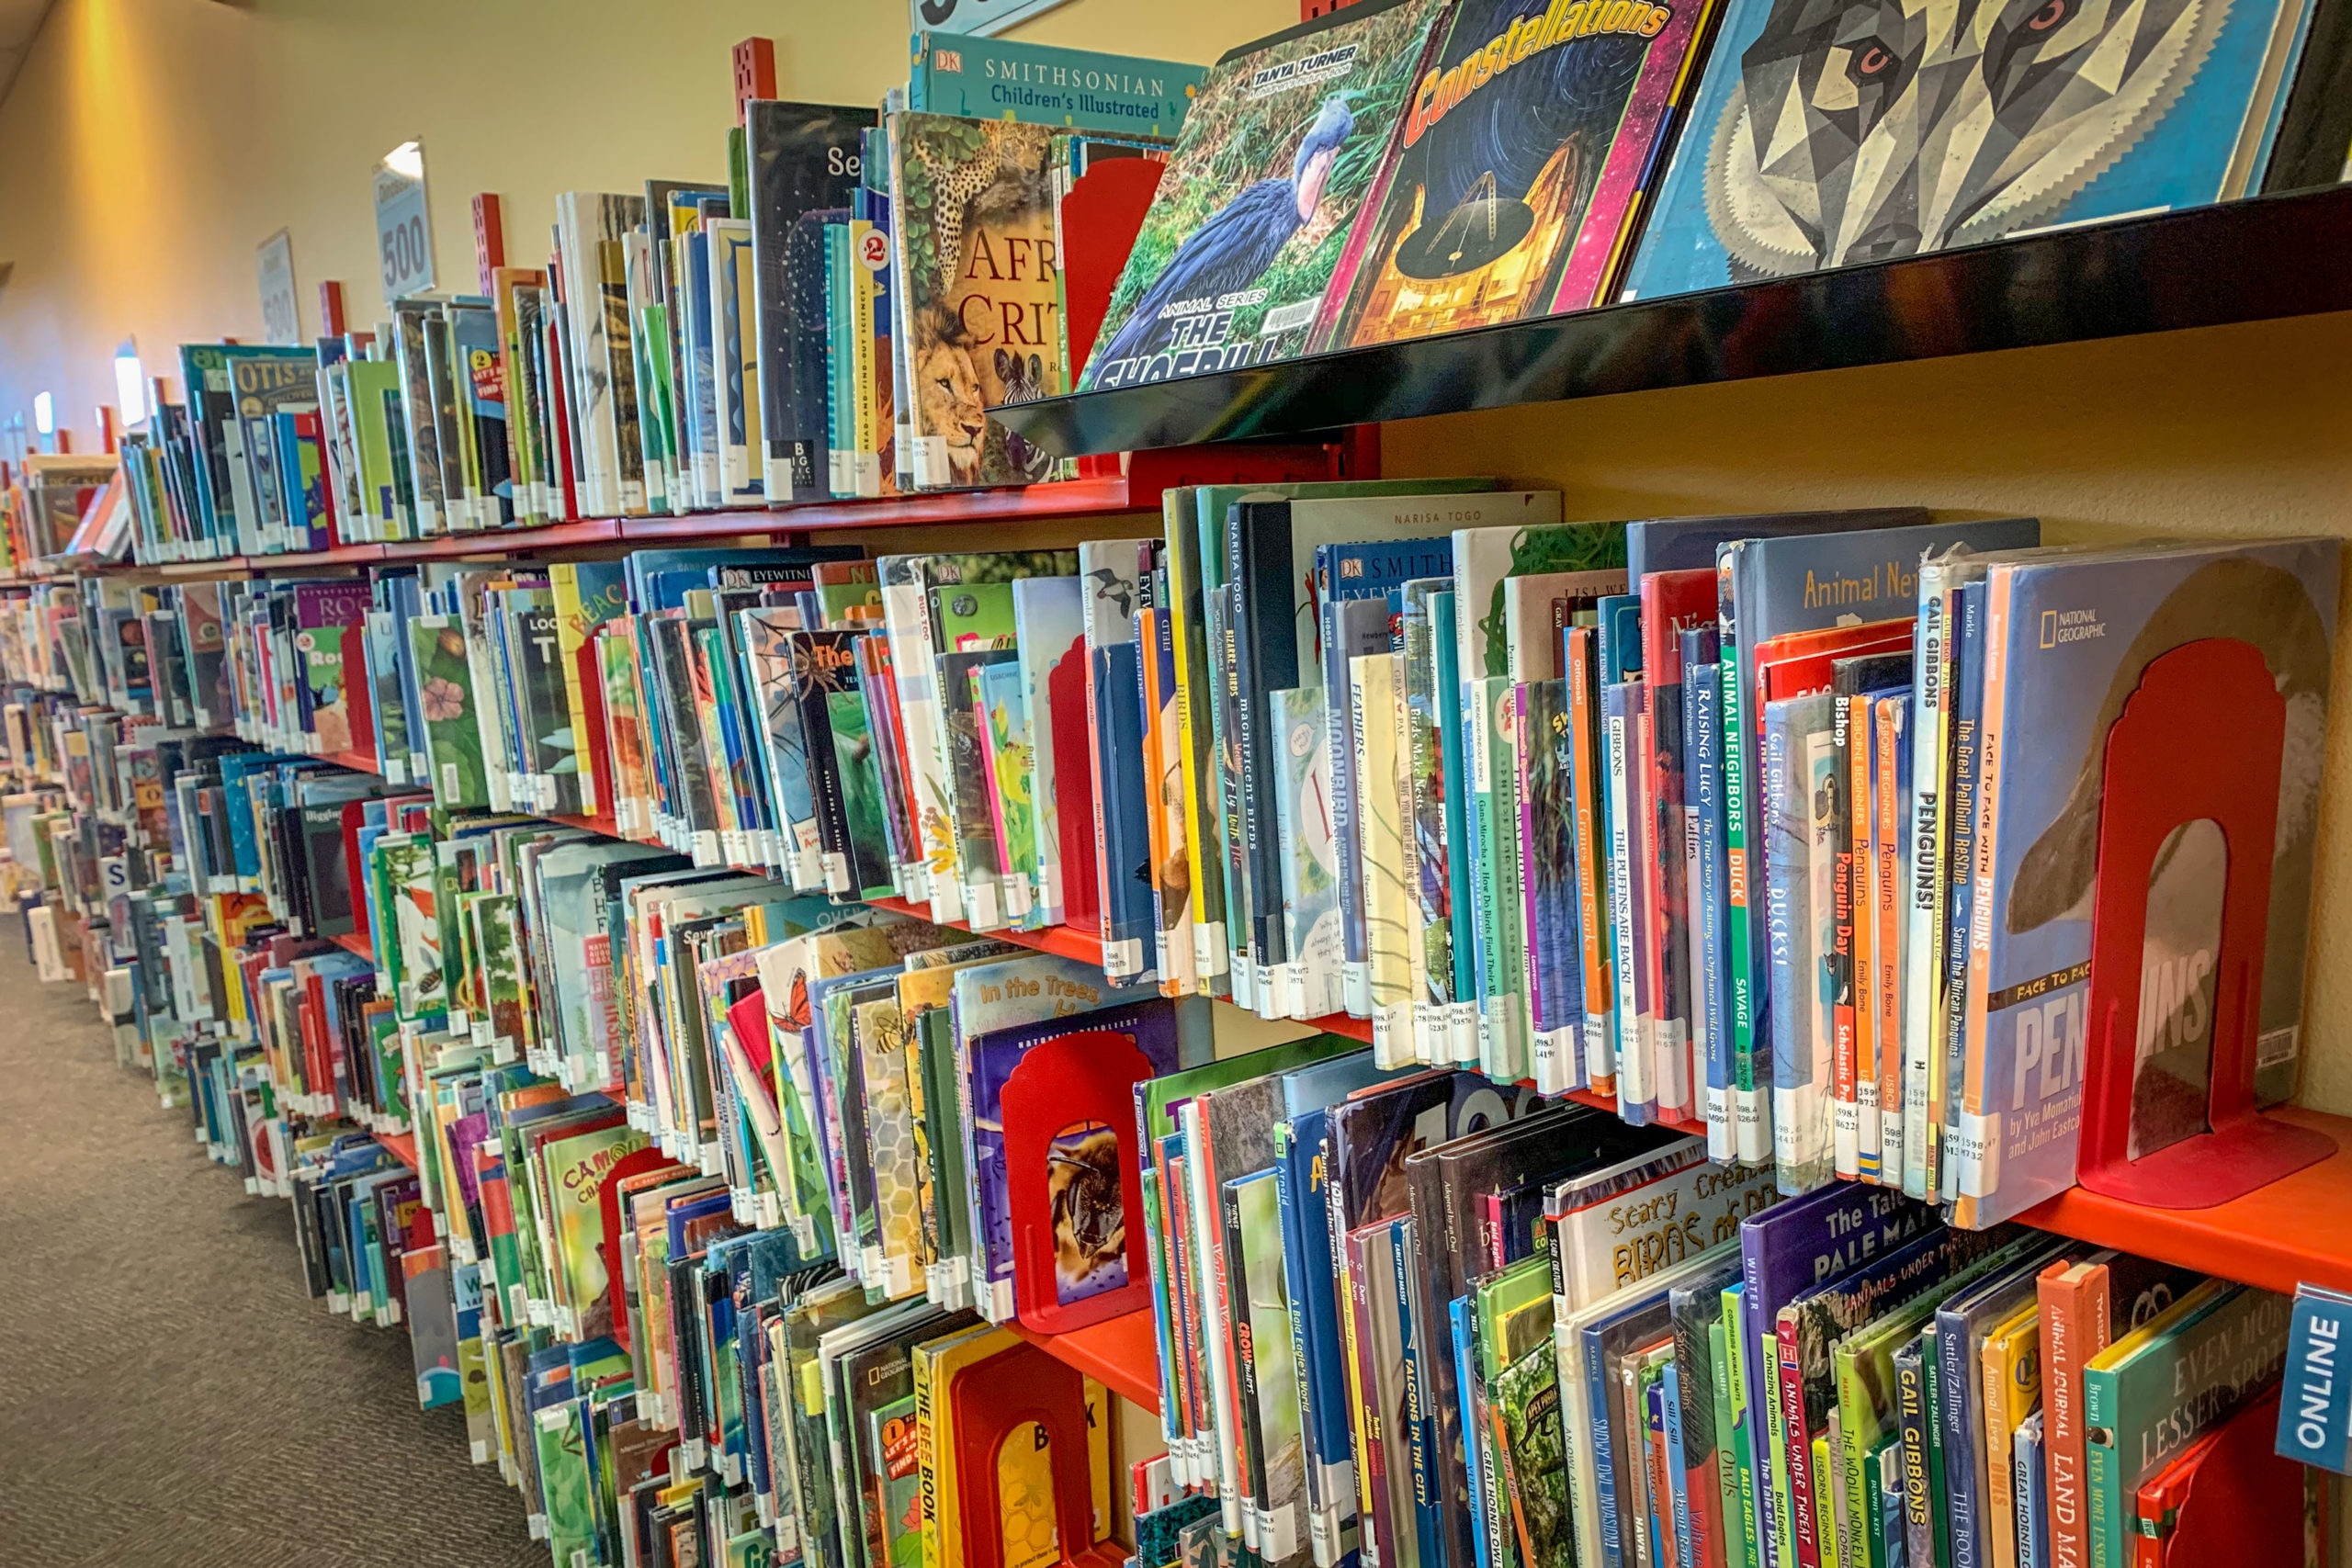 Mesa County Libraries will do away with overdue fines starting Jan. 1, 2020. Immediately, 3,000 people who were blocked from checking out books, movies and music will have their privileges restored.